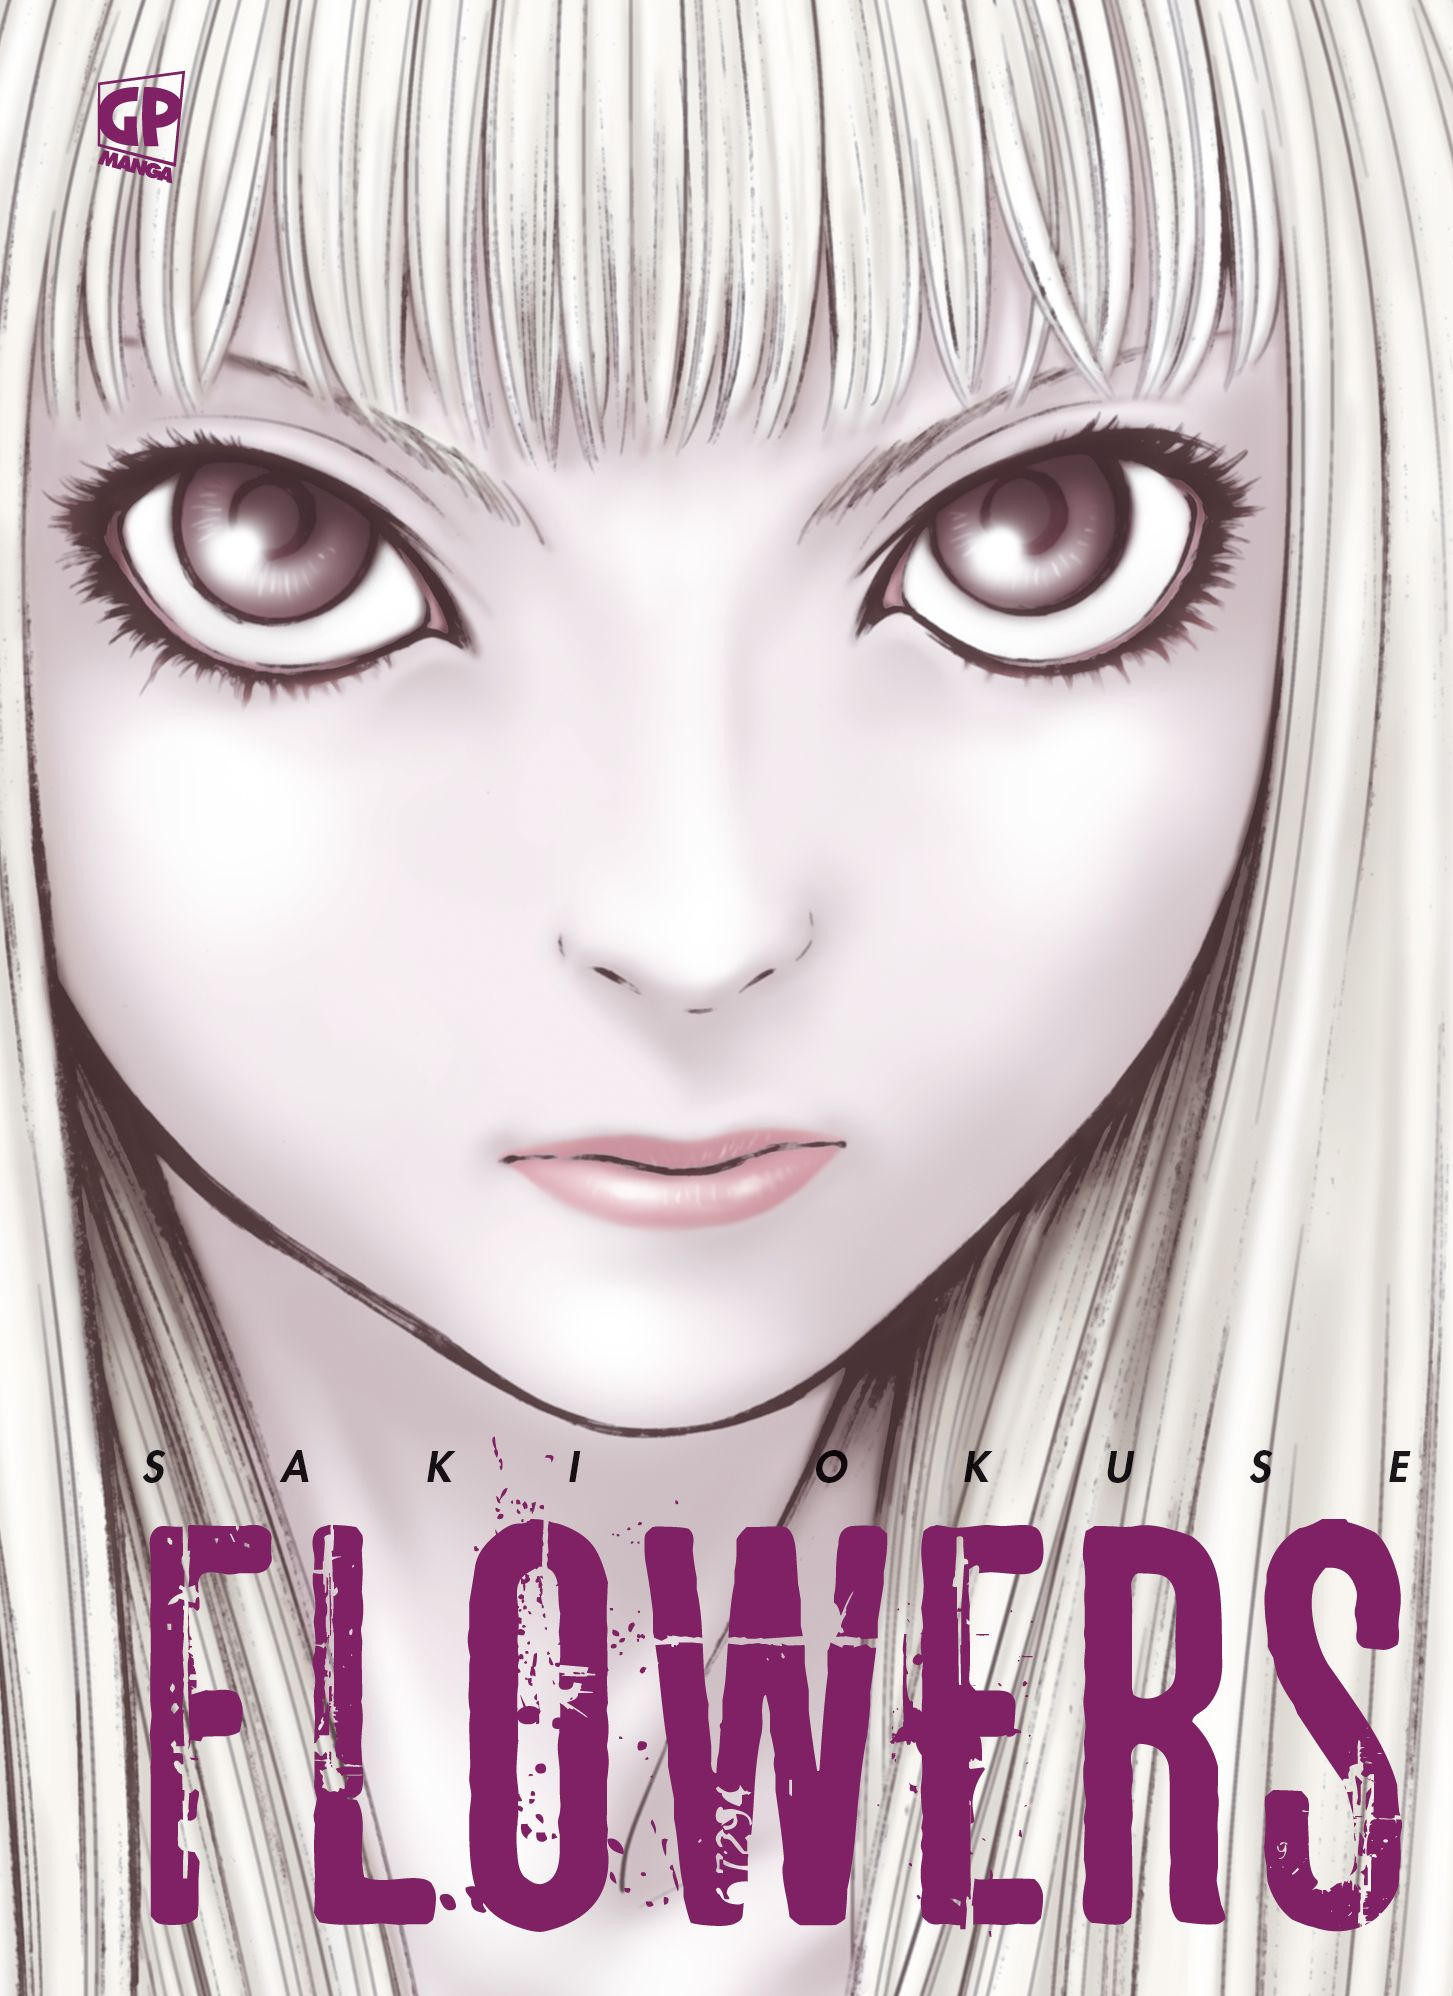 flowers gp manga